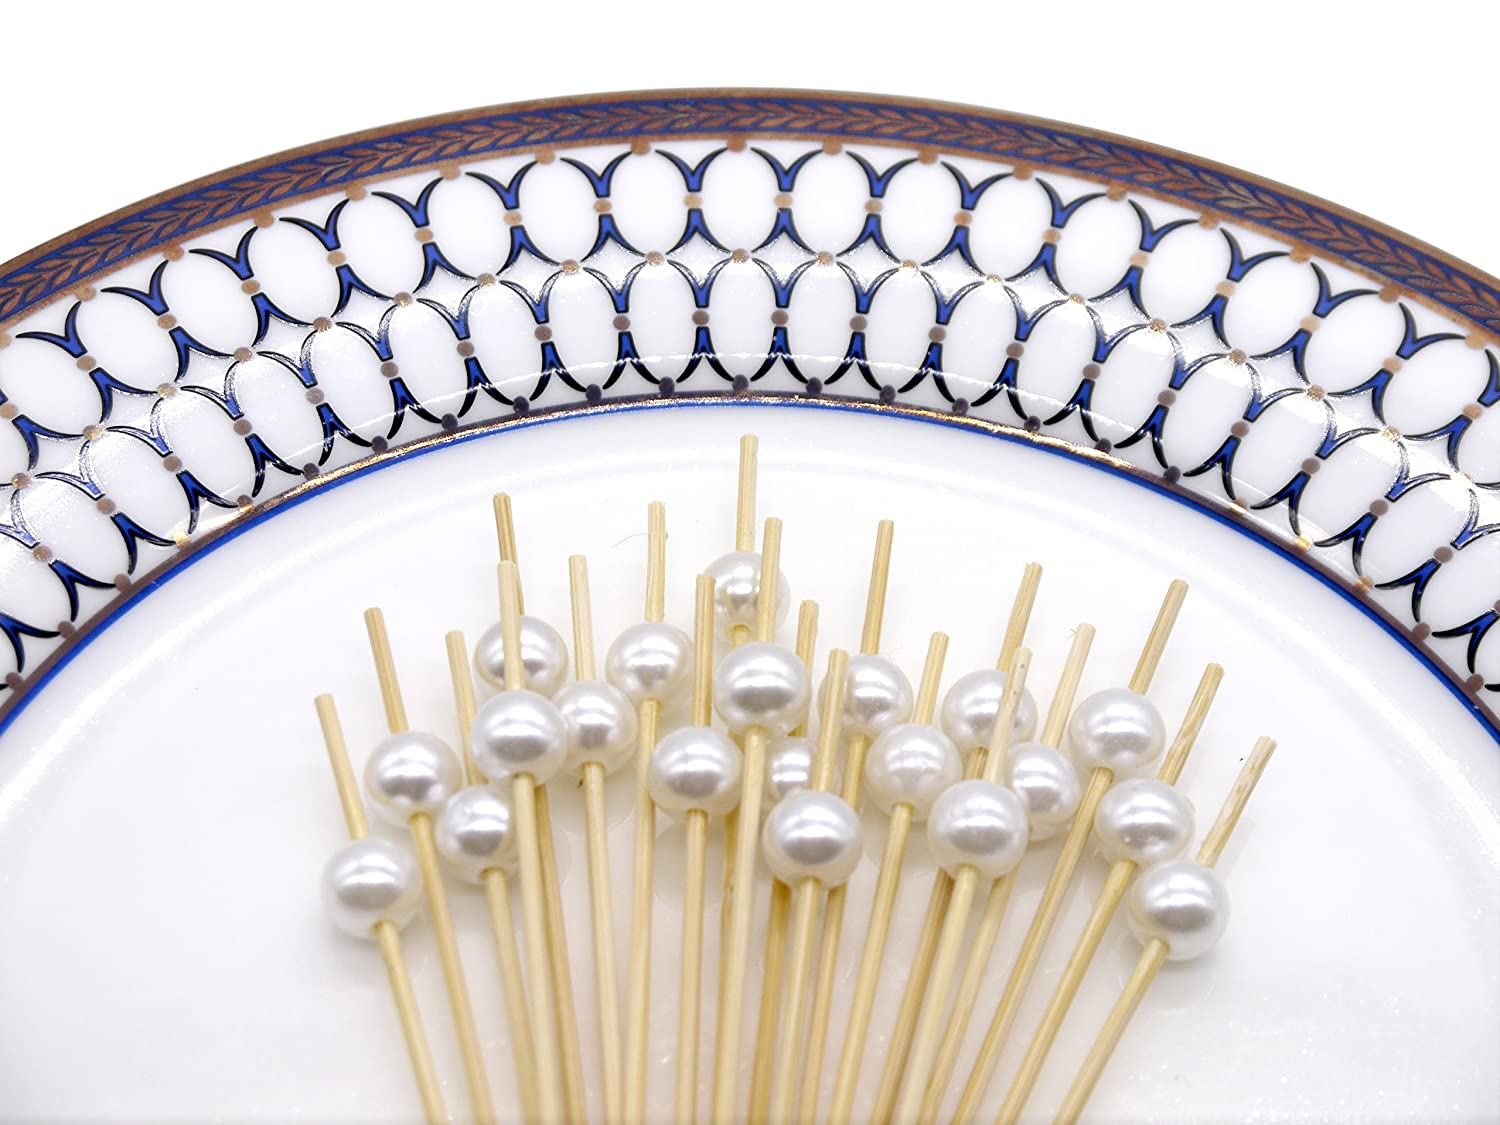 PuTwo Cocktail Sticks 100 Counts Cocktail Toothpicks Handmade Natural Bamboo Cocktail Pick Eco-Friendly Appetizers Sticks for Cocktails Appetizers Fruits Desserts Party Supplies Sliver Pearls